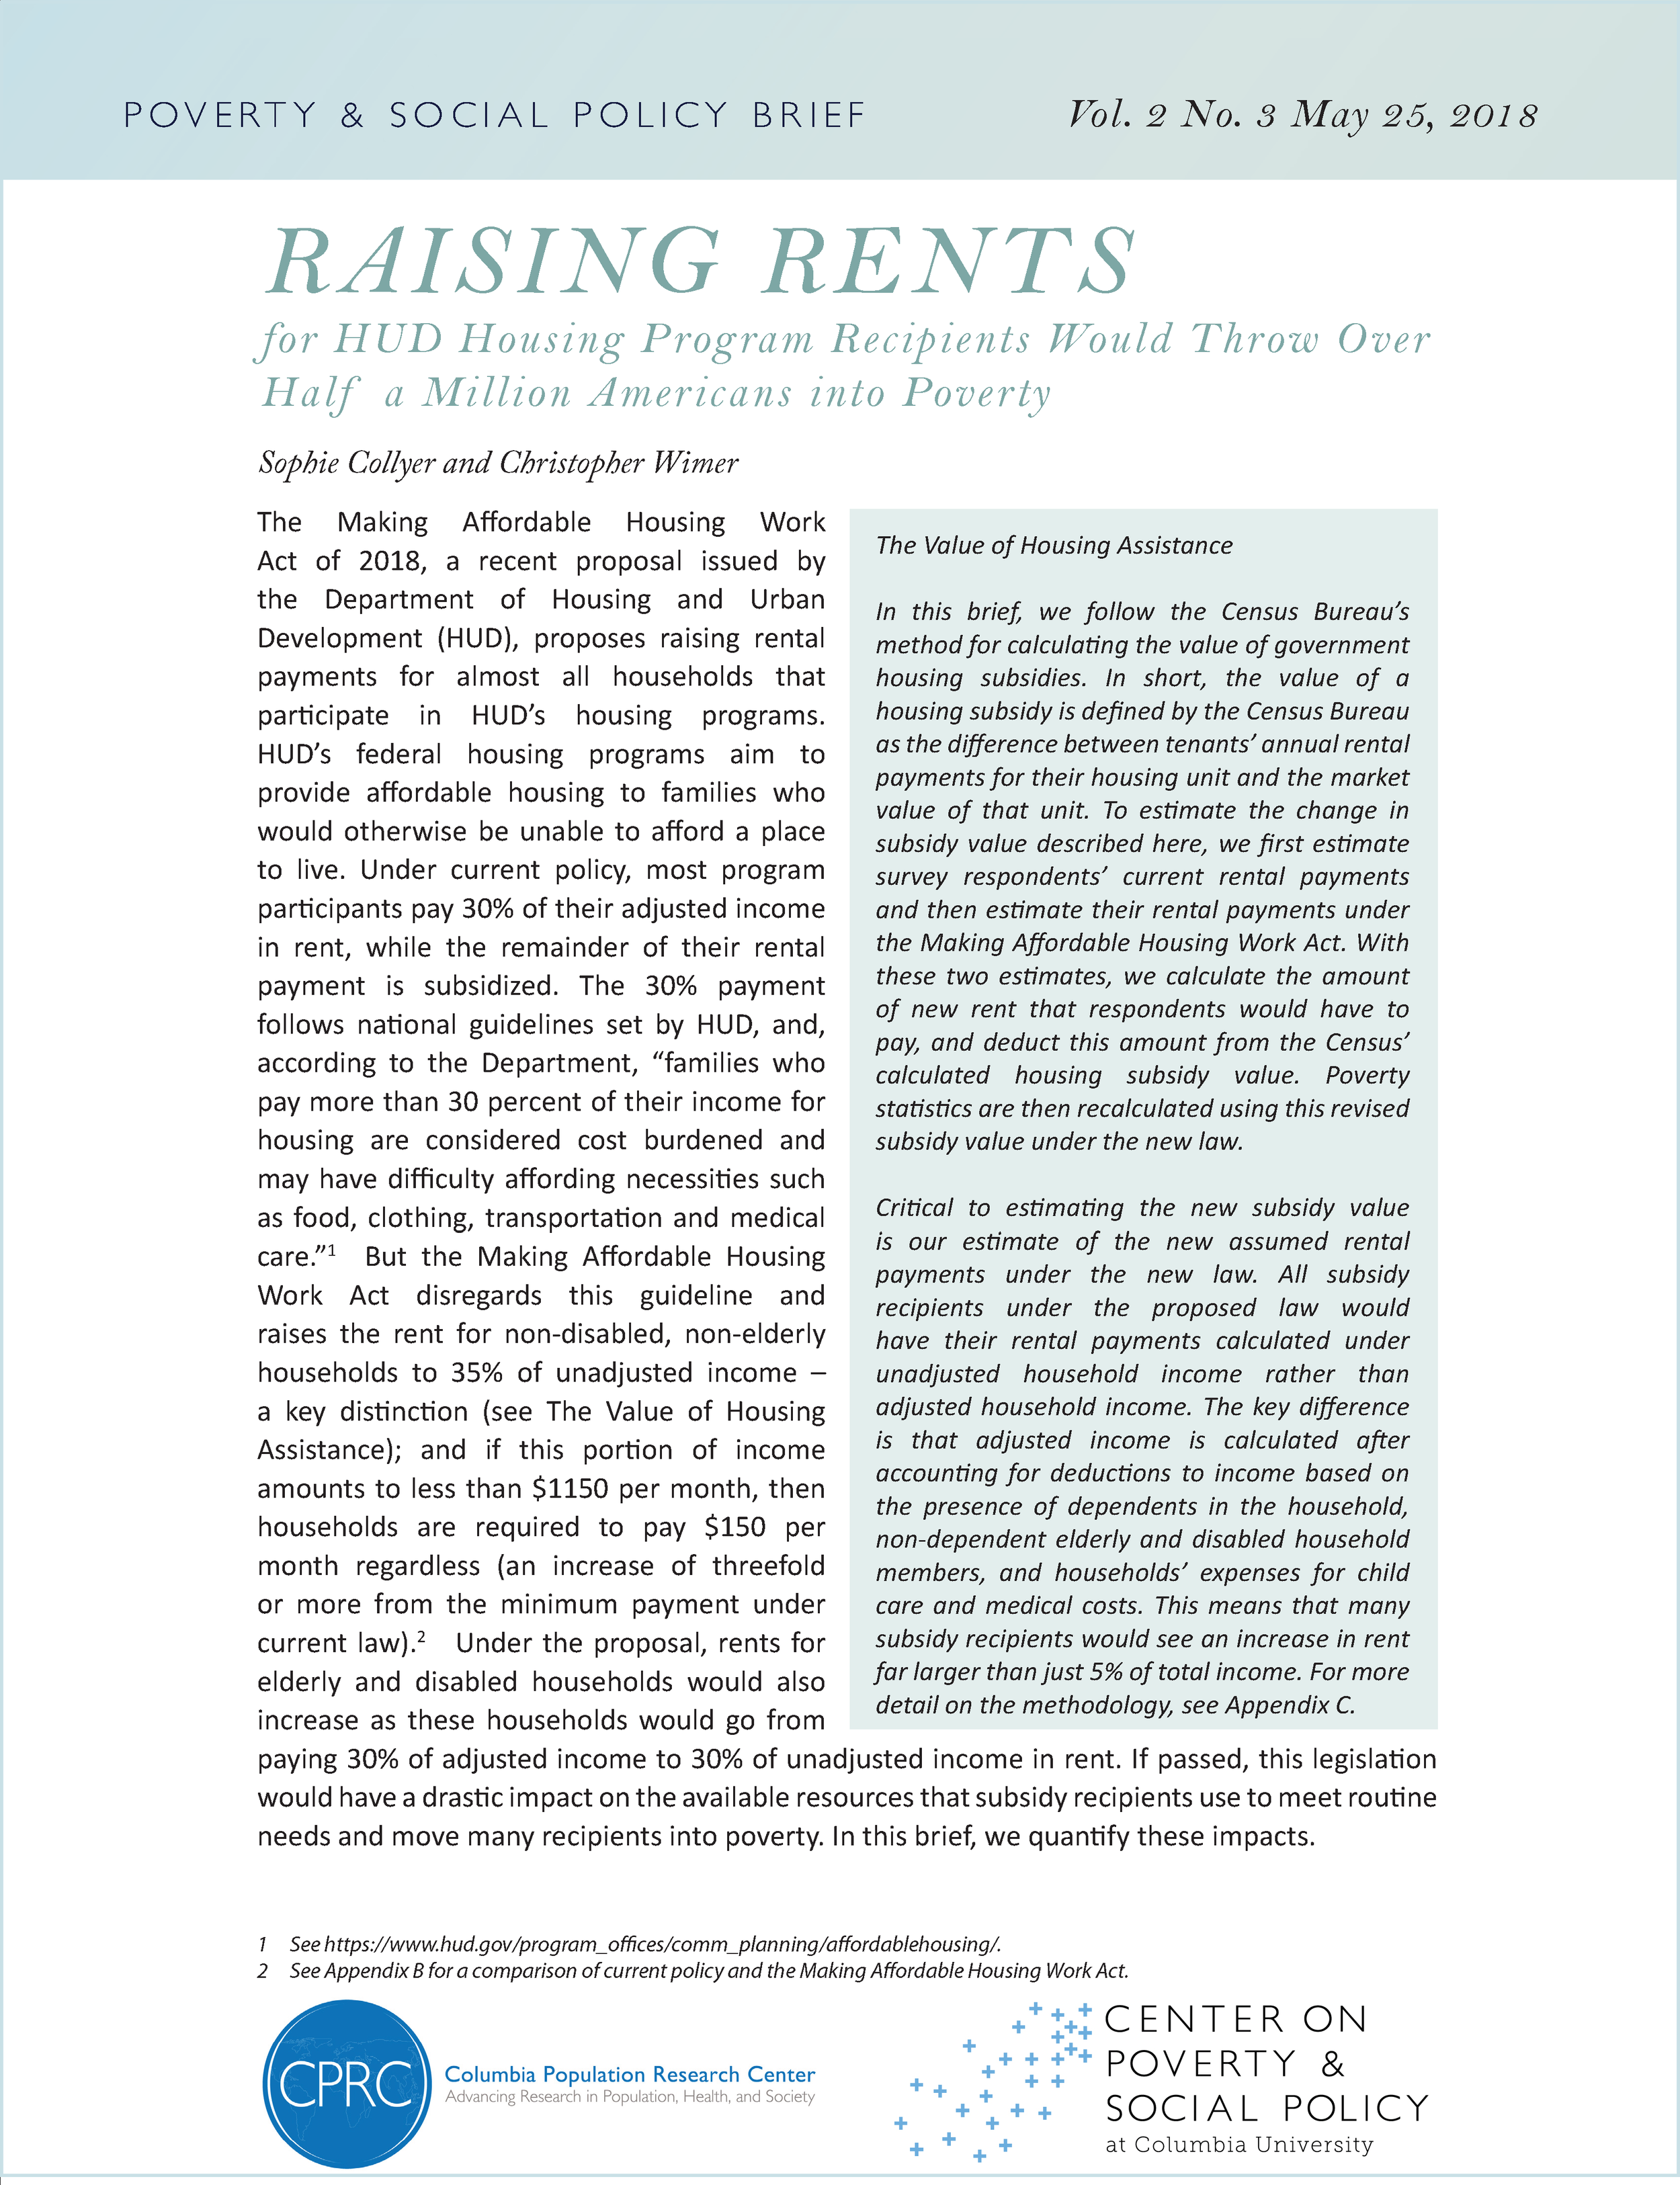 Poverty and Social Policy Brief_2_3_thumb.png